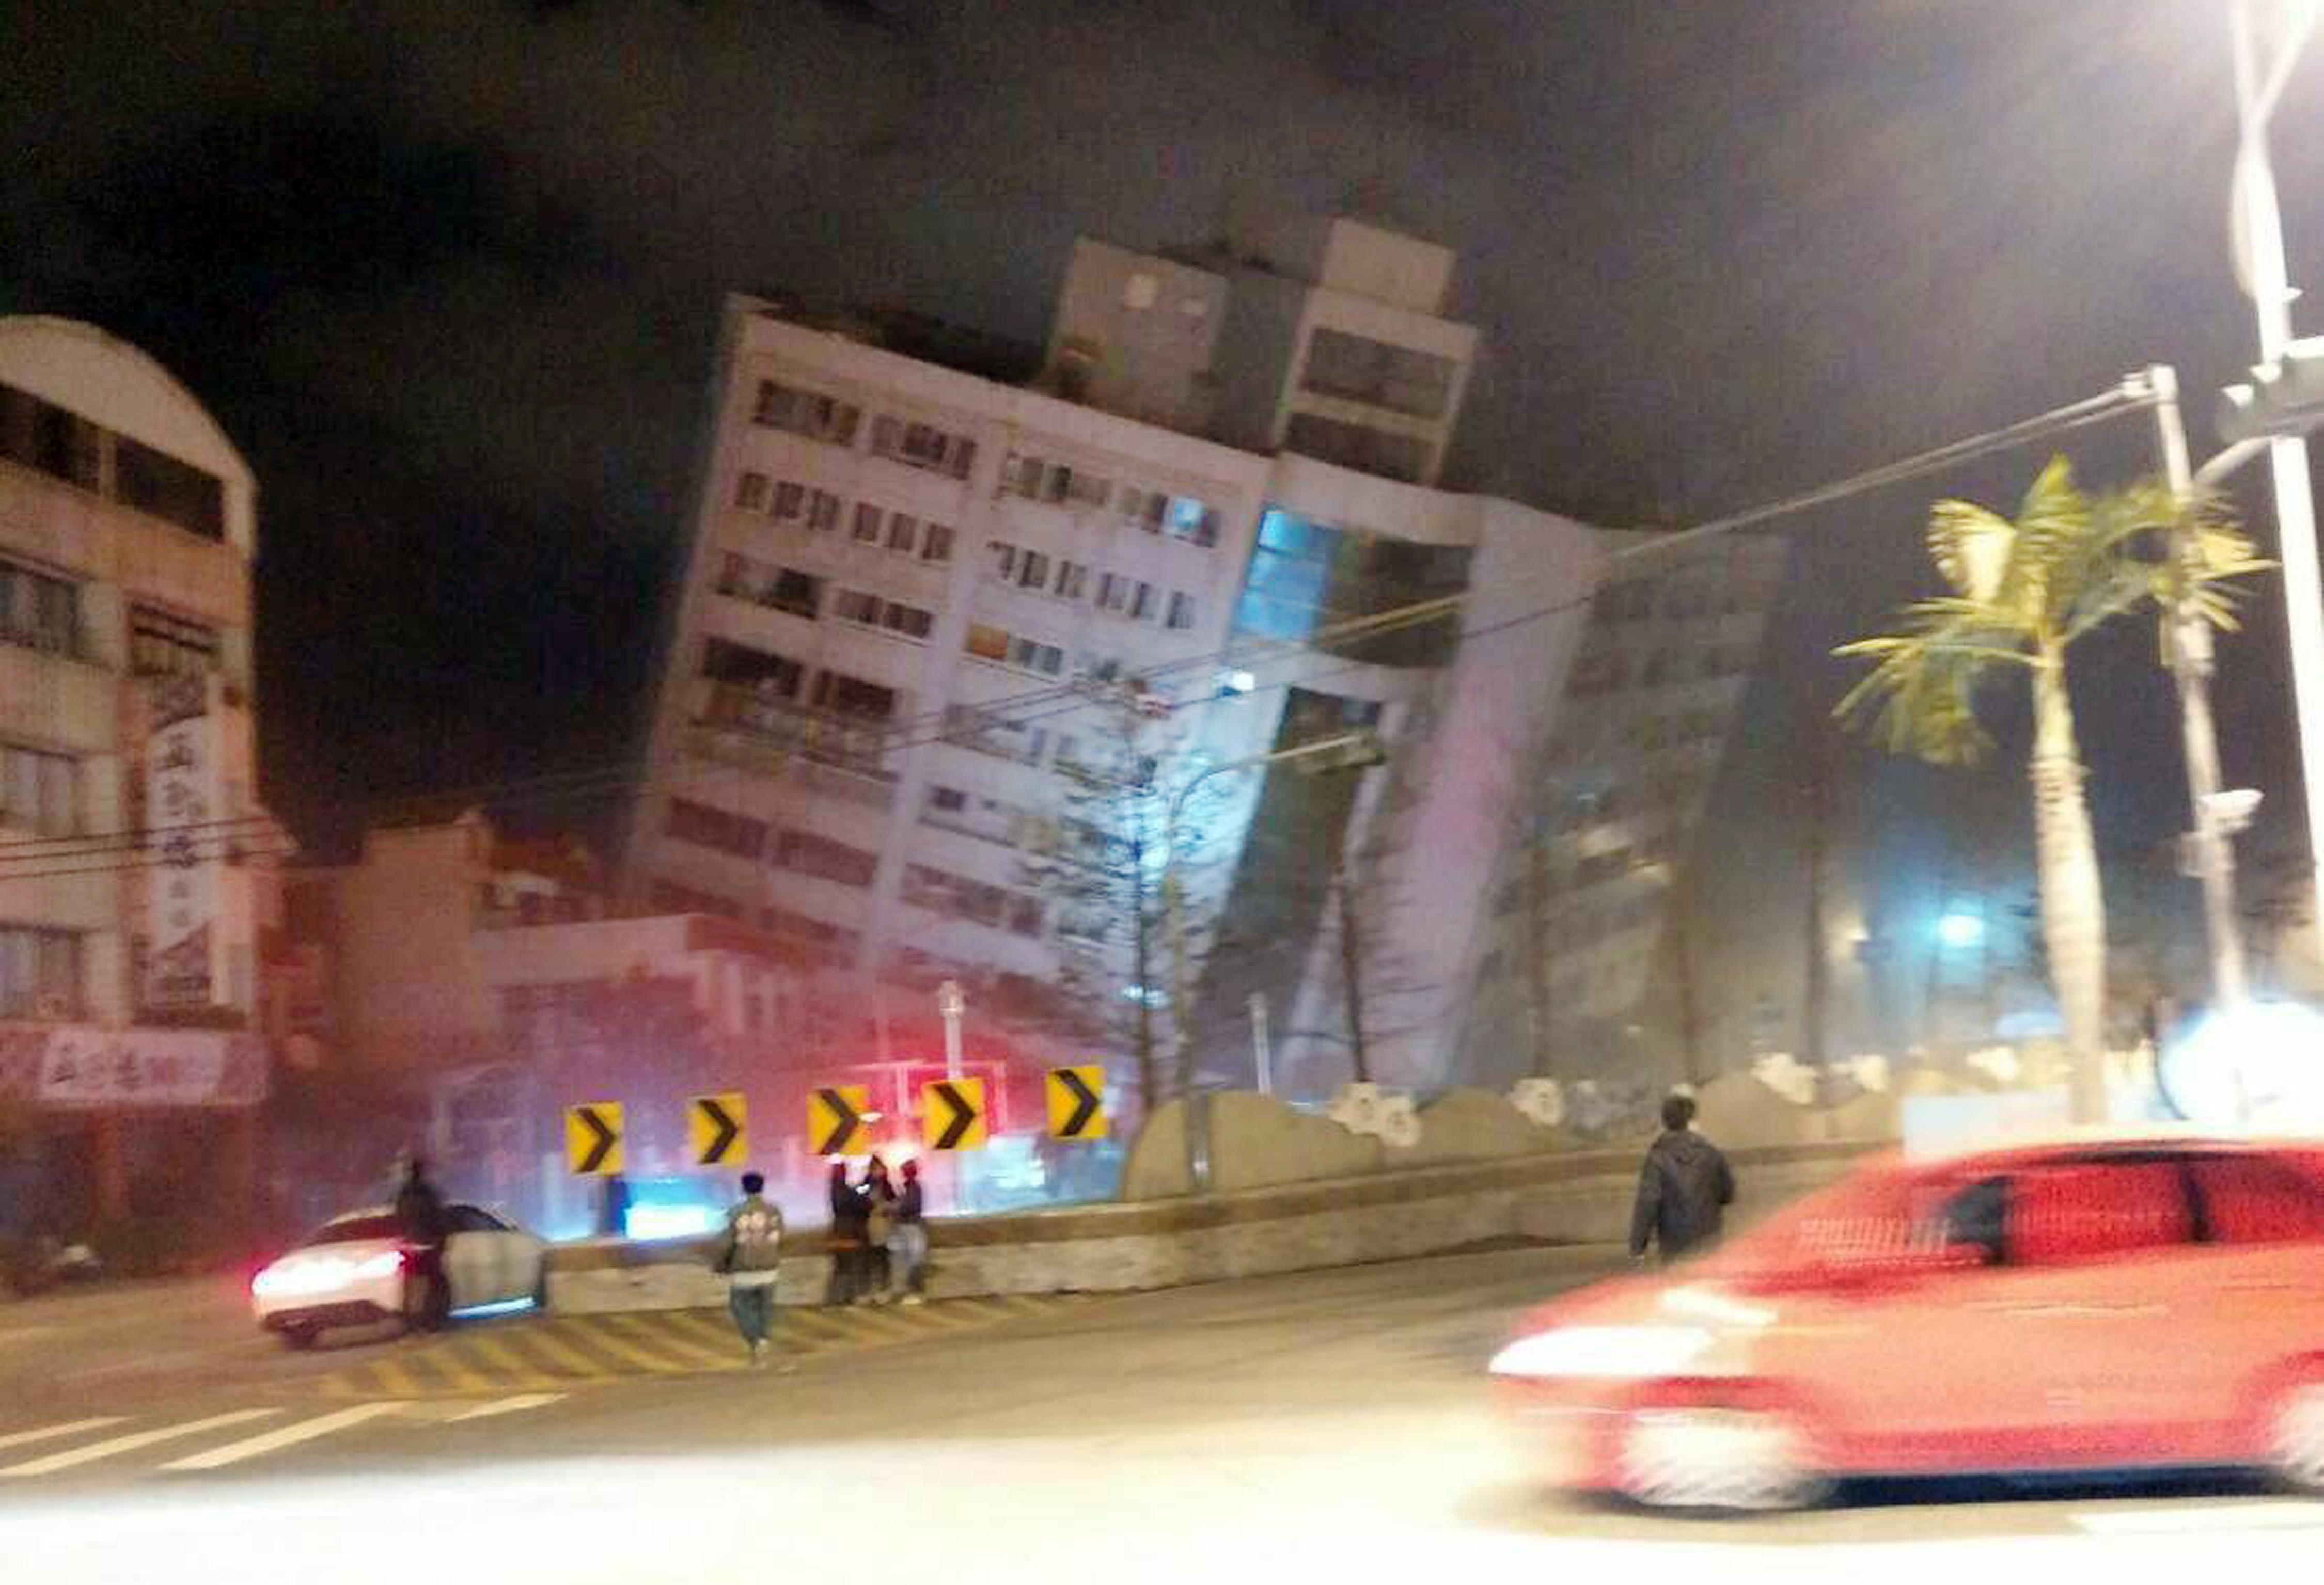 In this photo released by Hualien County Fire Bureau, rescuers are seen entering an building that collapsed onto its side from an early morning earthquake in Hualien County, eastern Taiwan, Wednesday, Feb. 7 2018. A 6.4-magnitude earthquake has struck eastern Taiwan, according to the U.S. Geological Survey. (Hualien County Fire Bureau via AP)